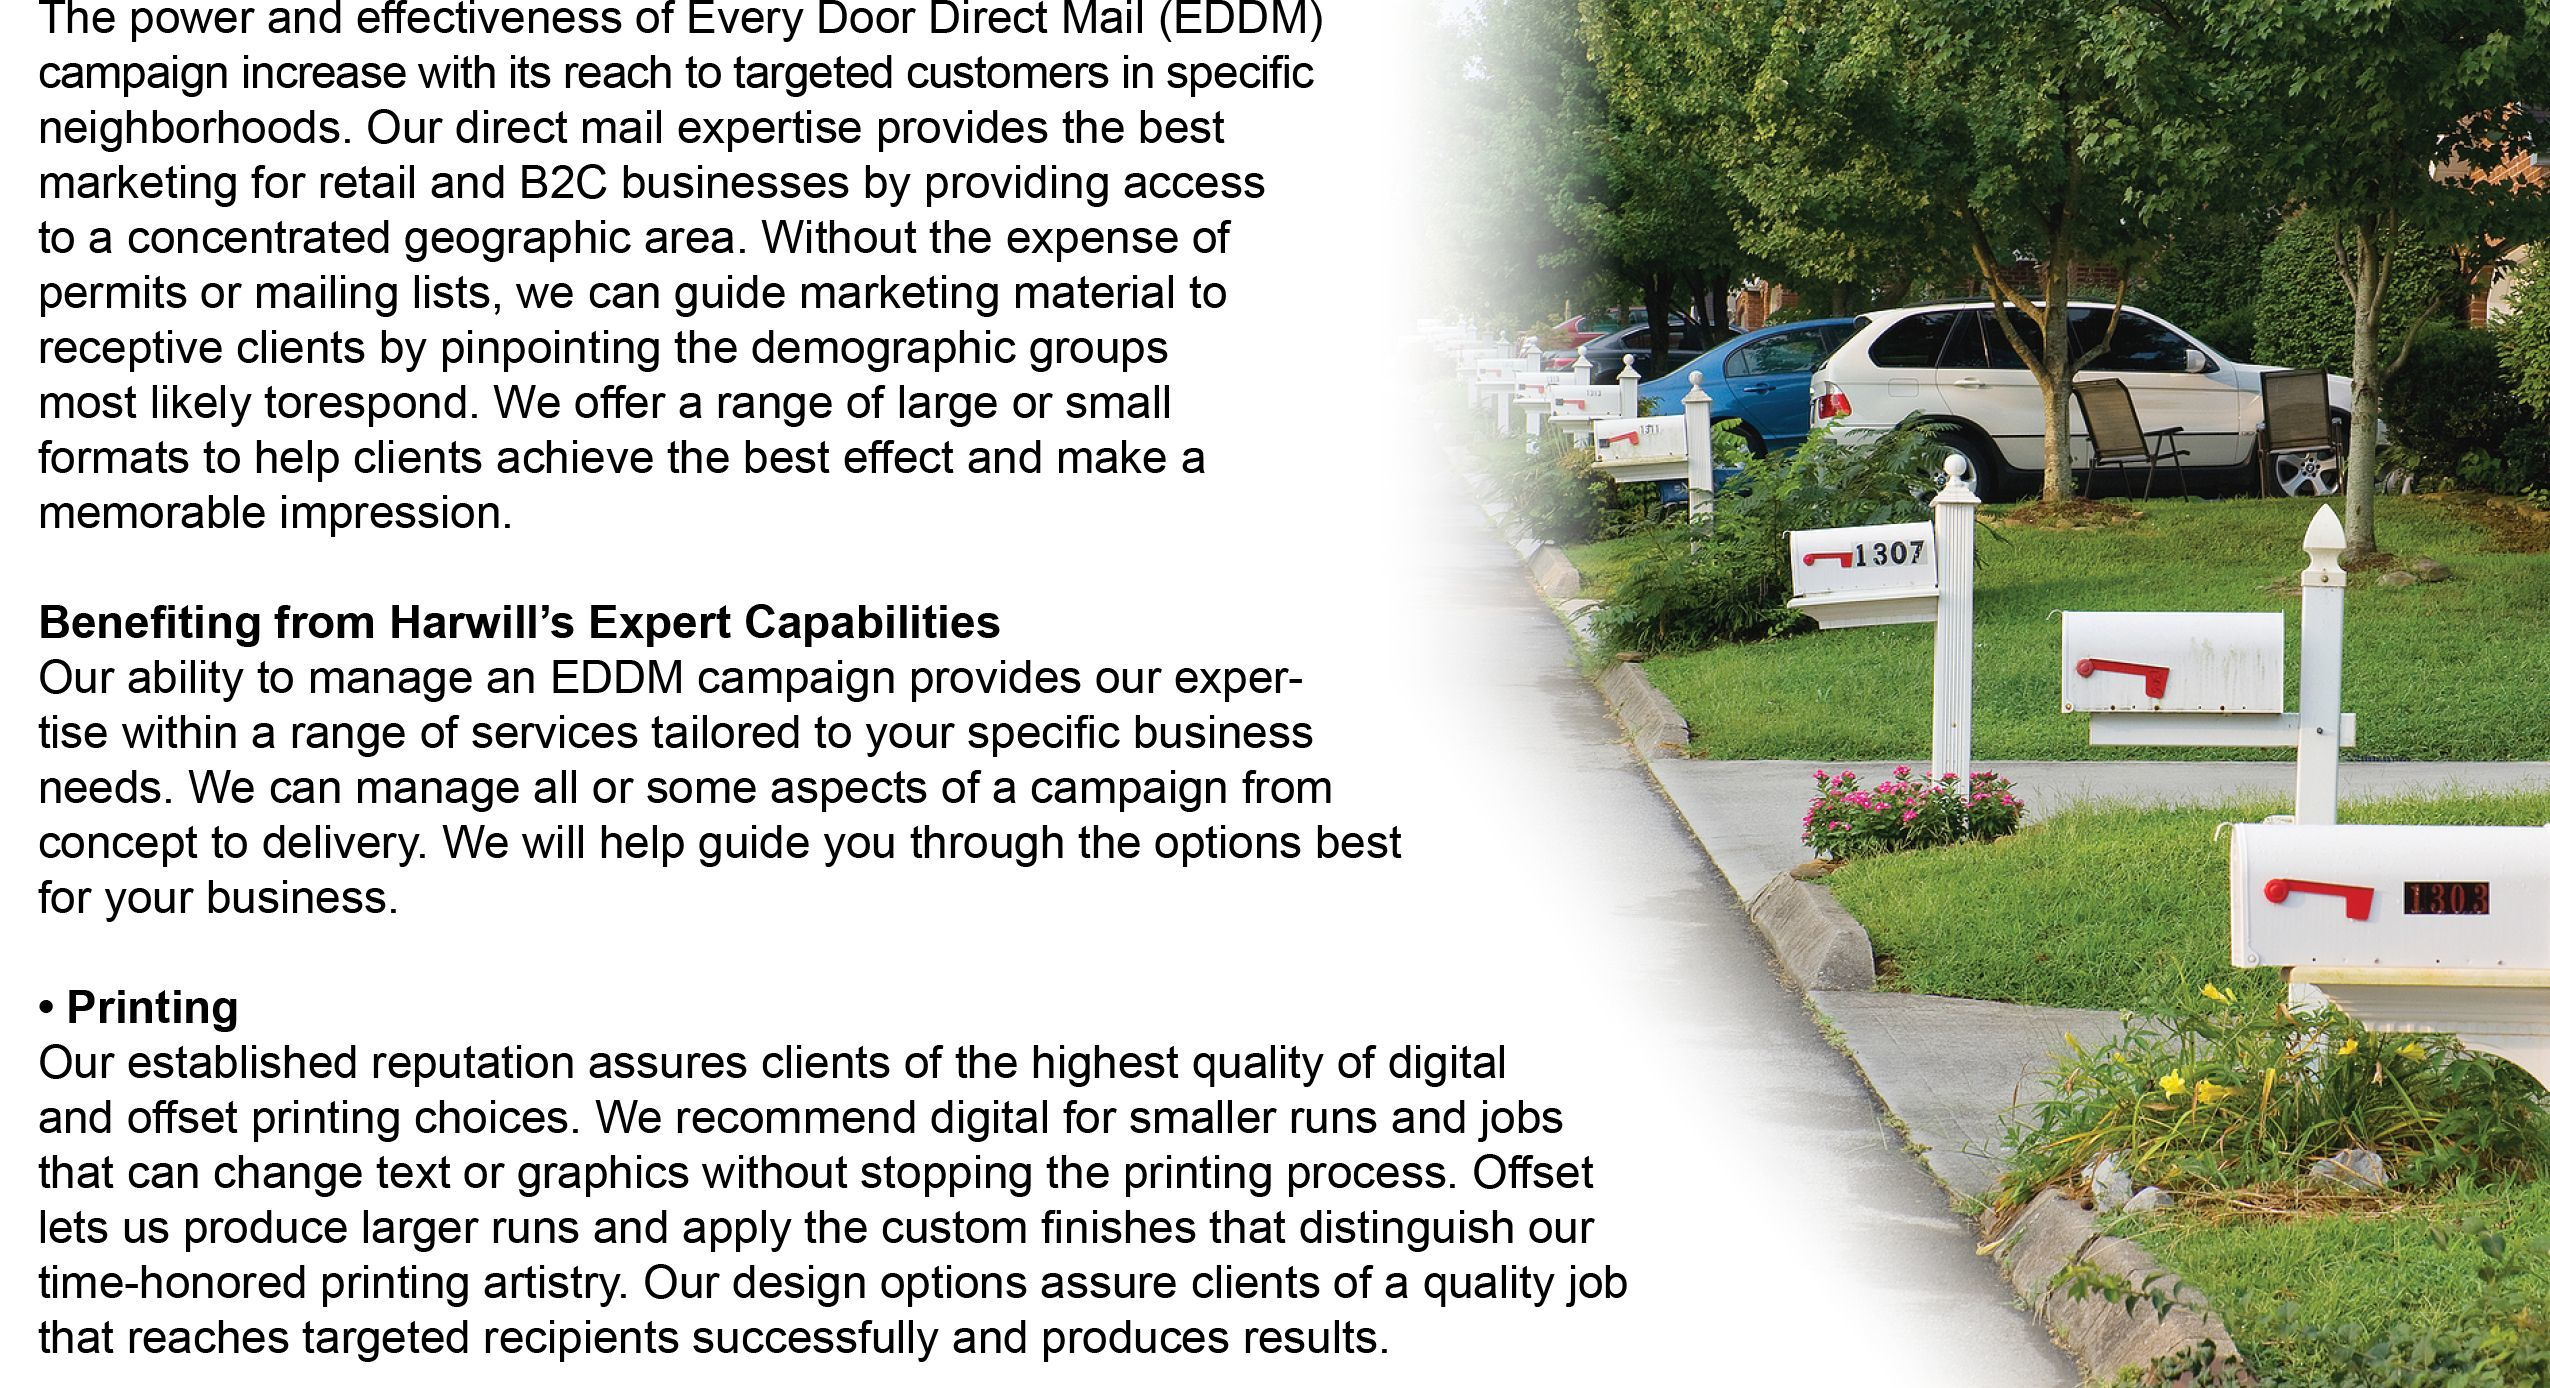 EDDM Every Door Direct Mail a great way to get your message in your local neighbors' mailbox!